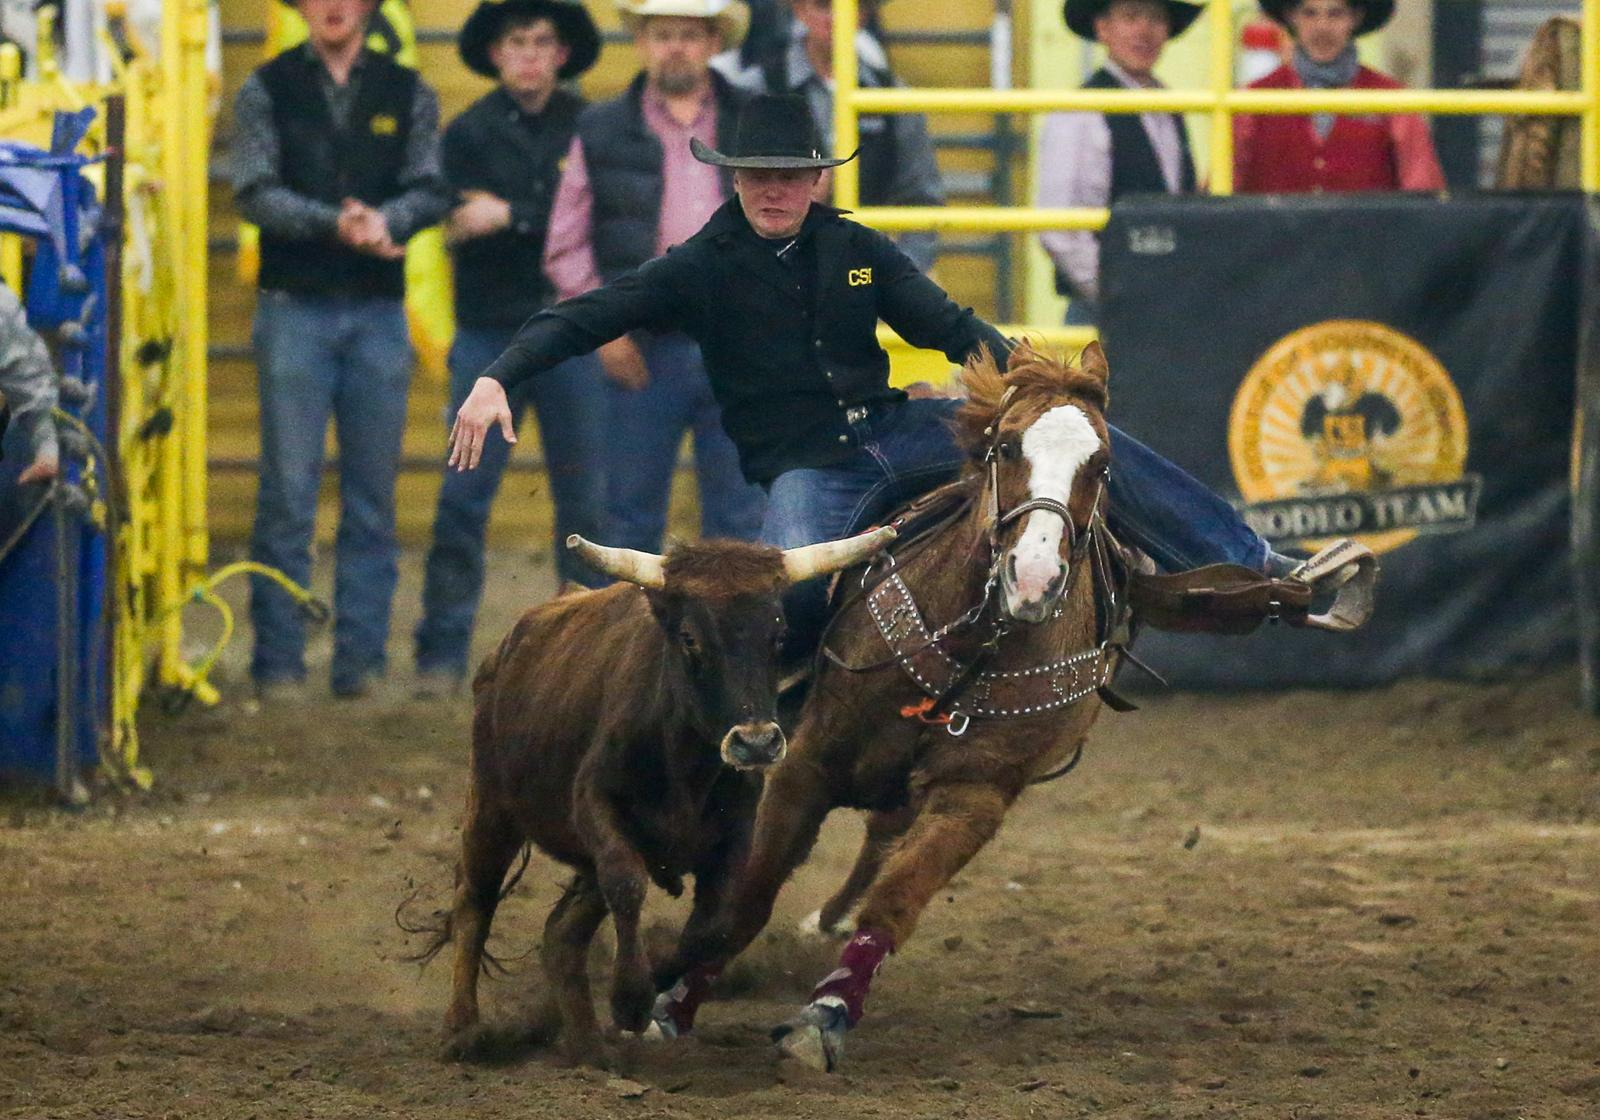 Csi Men S Rodeo Extends Region Lead With Win At Snow